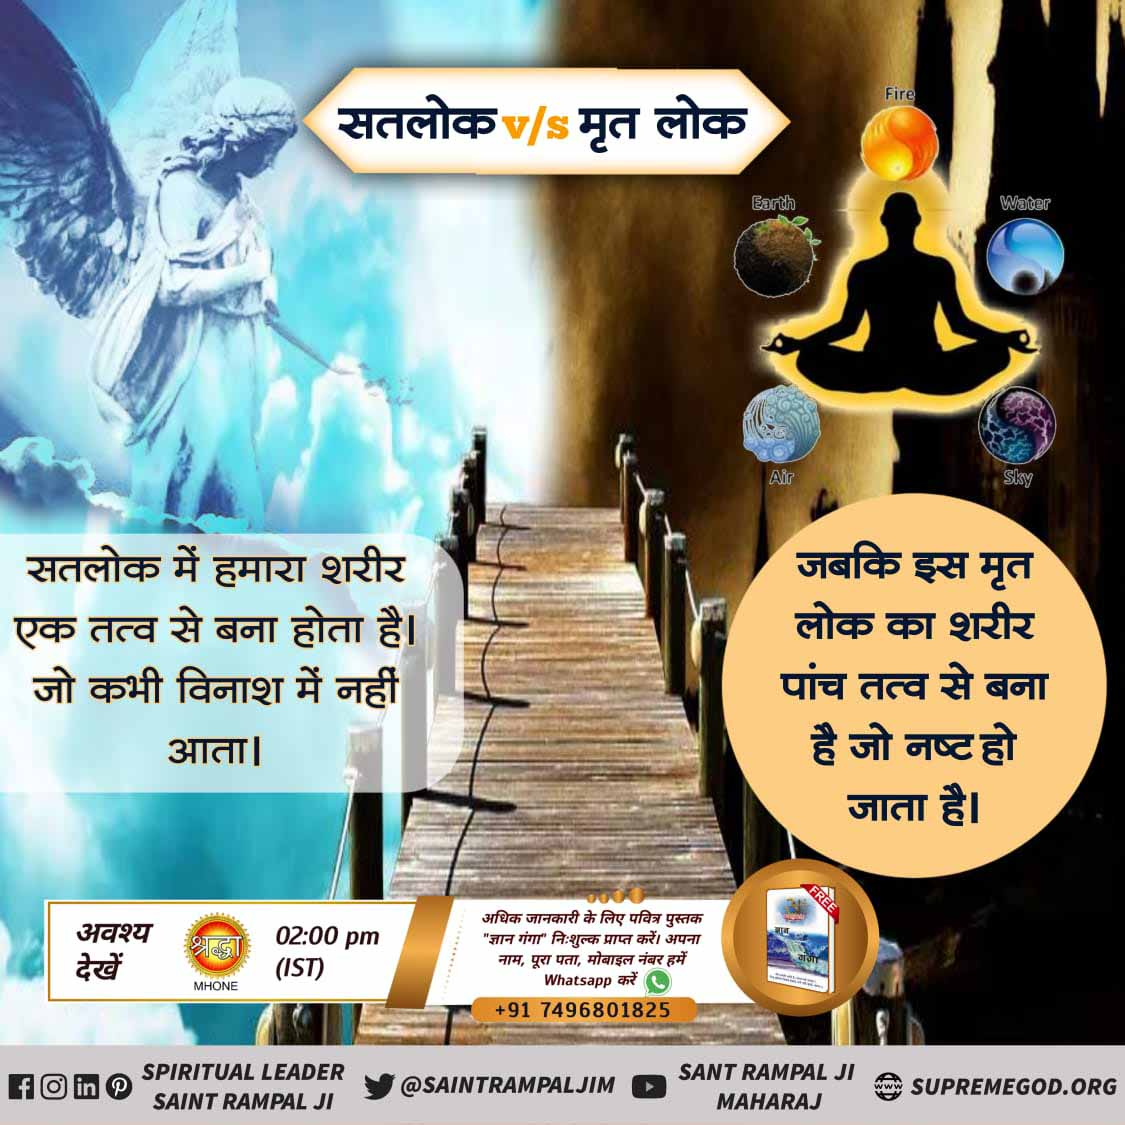 #tuesdaymotivations #GodMorningTuesday The creature suffers only as he did in the earth. @SaintRampalJiM There is no absence in Satlok. Everyone meets the quota of God and for this reason there is no rage. All live together in love and praise God.